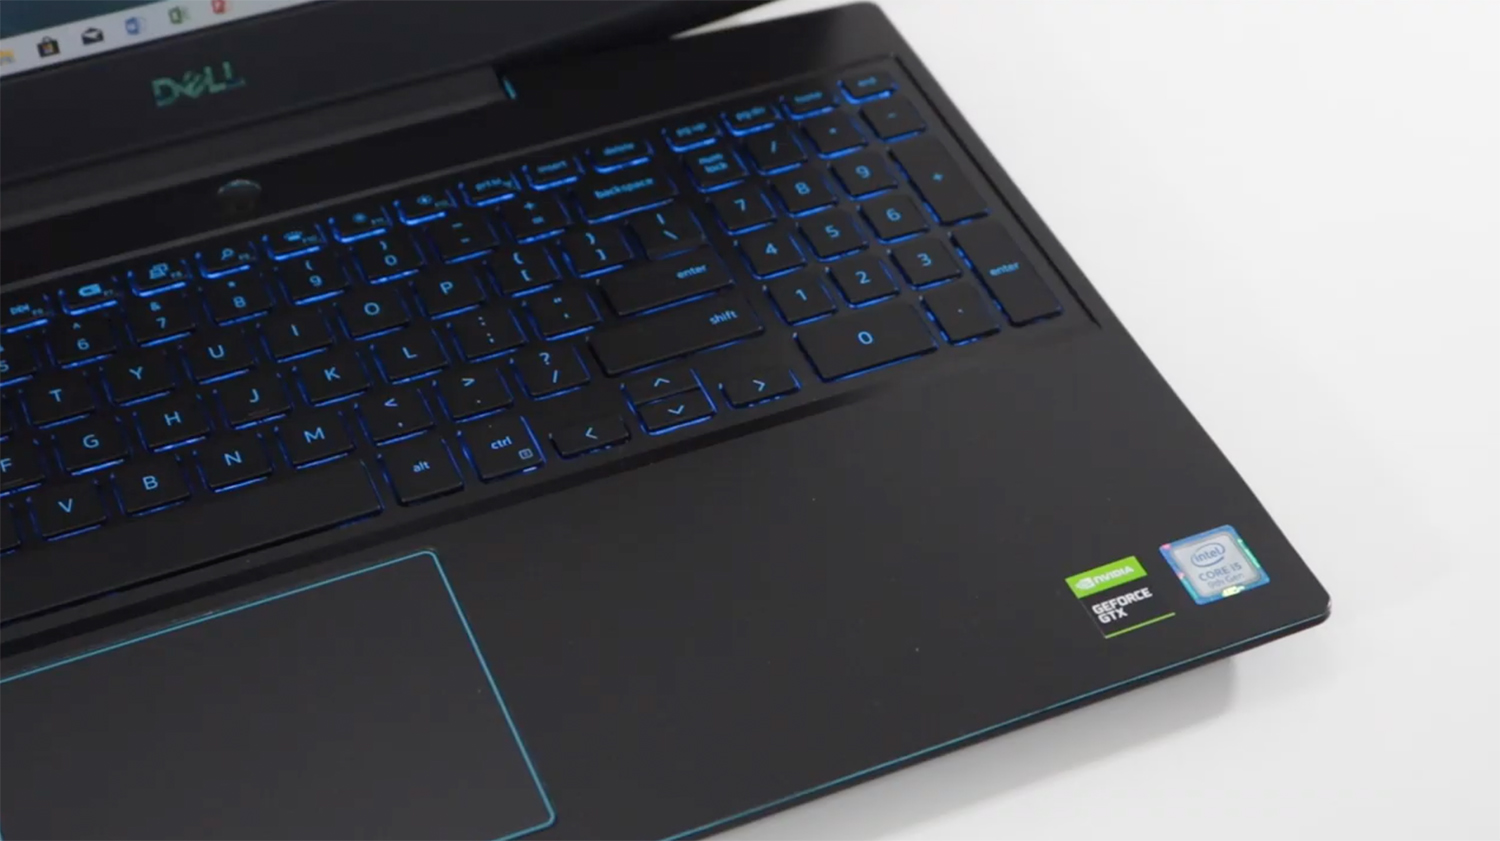 Dell G3 Analysis: Powerful Input Notebook From Dell - Buy Manual